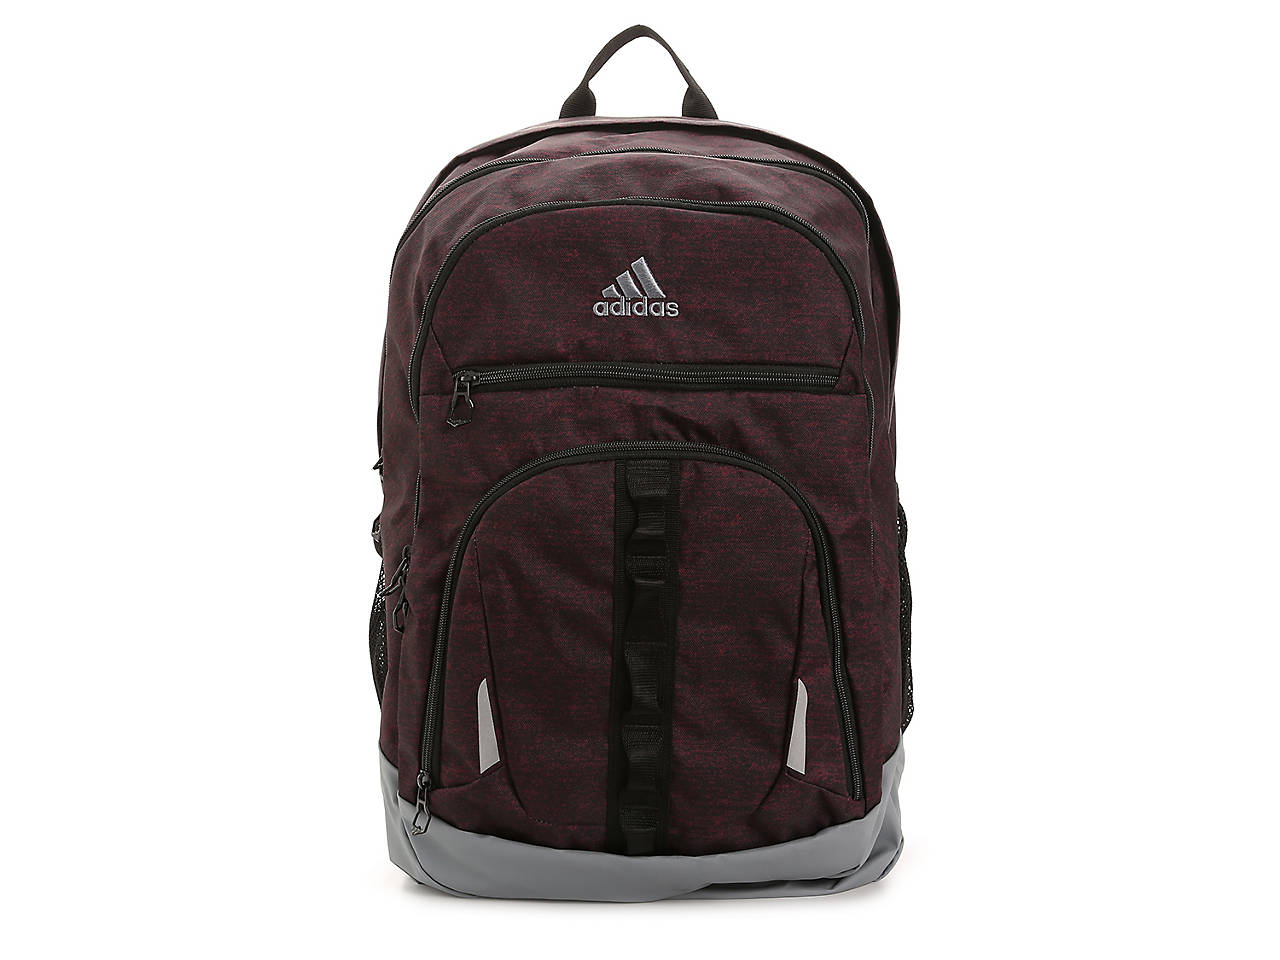 e538f69f78 adidas Prime IV Backpack Men s Handbags   Accessories